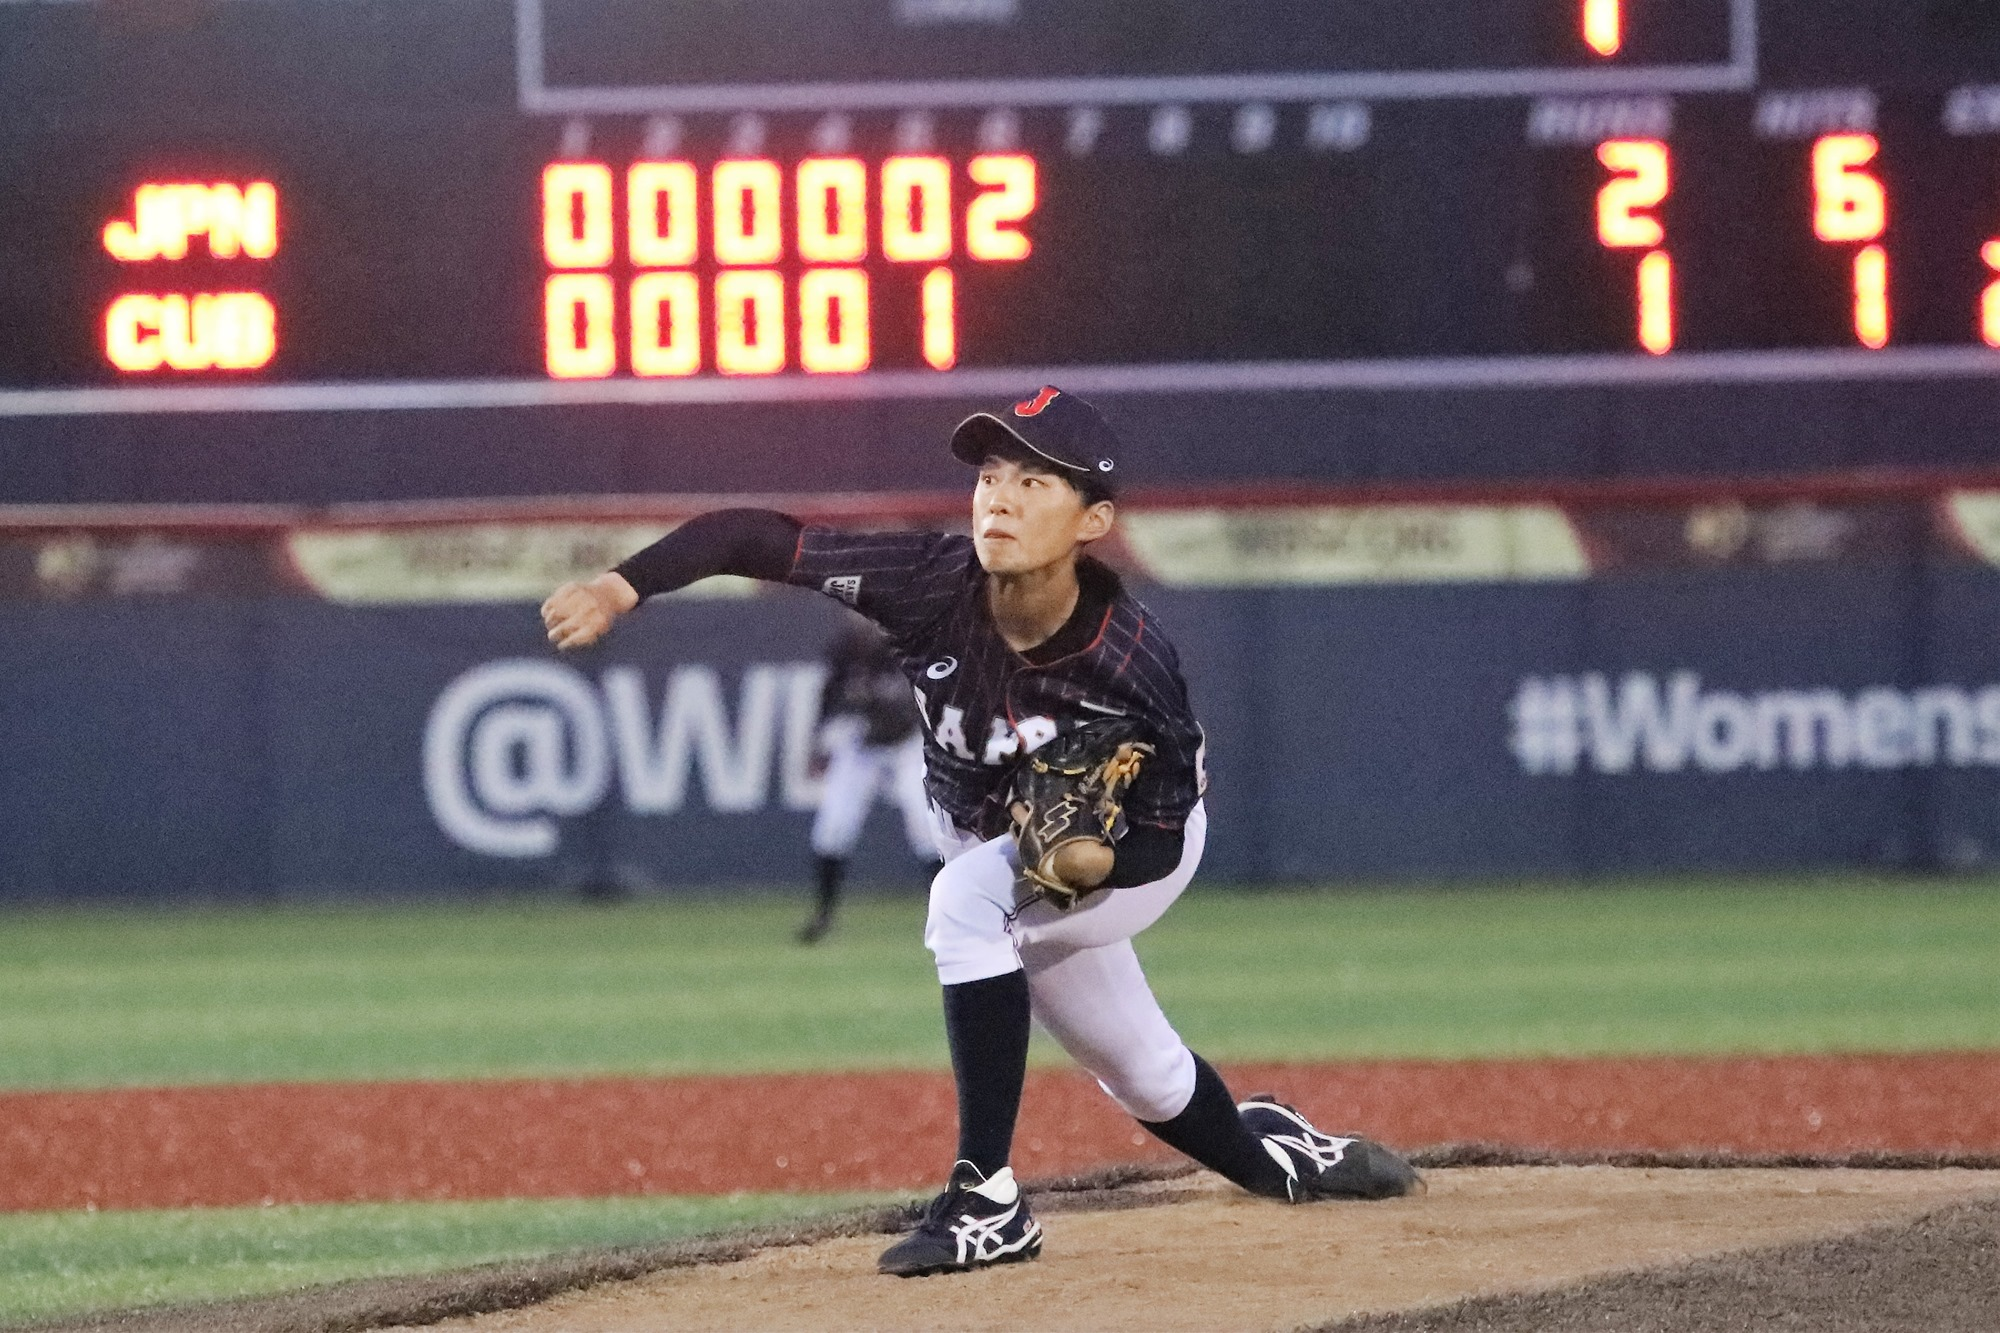 Rina Taniyama pitched the seventh for Japan